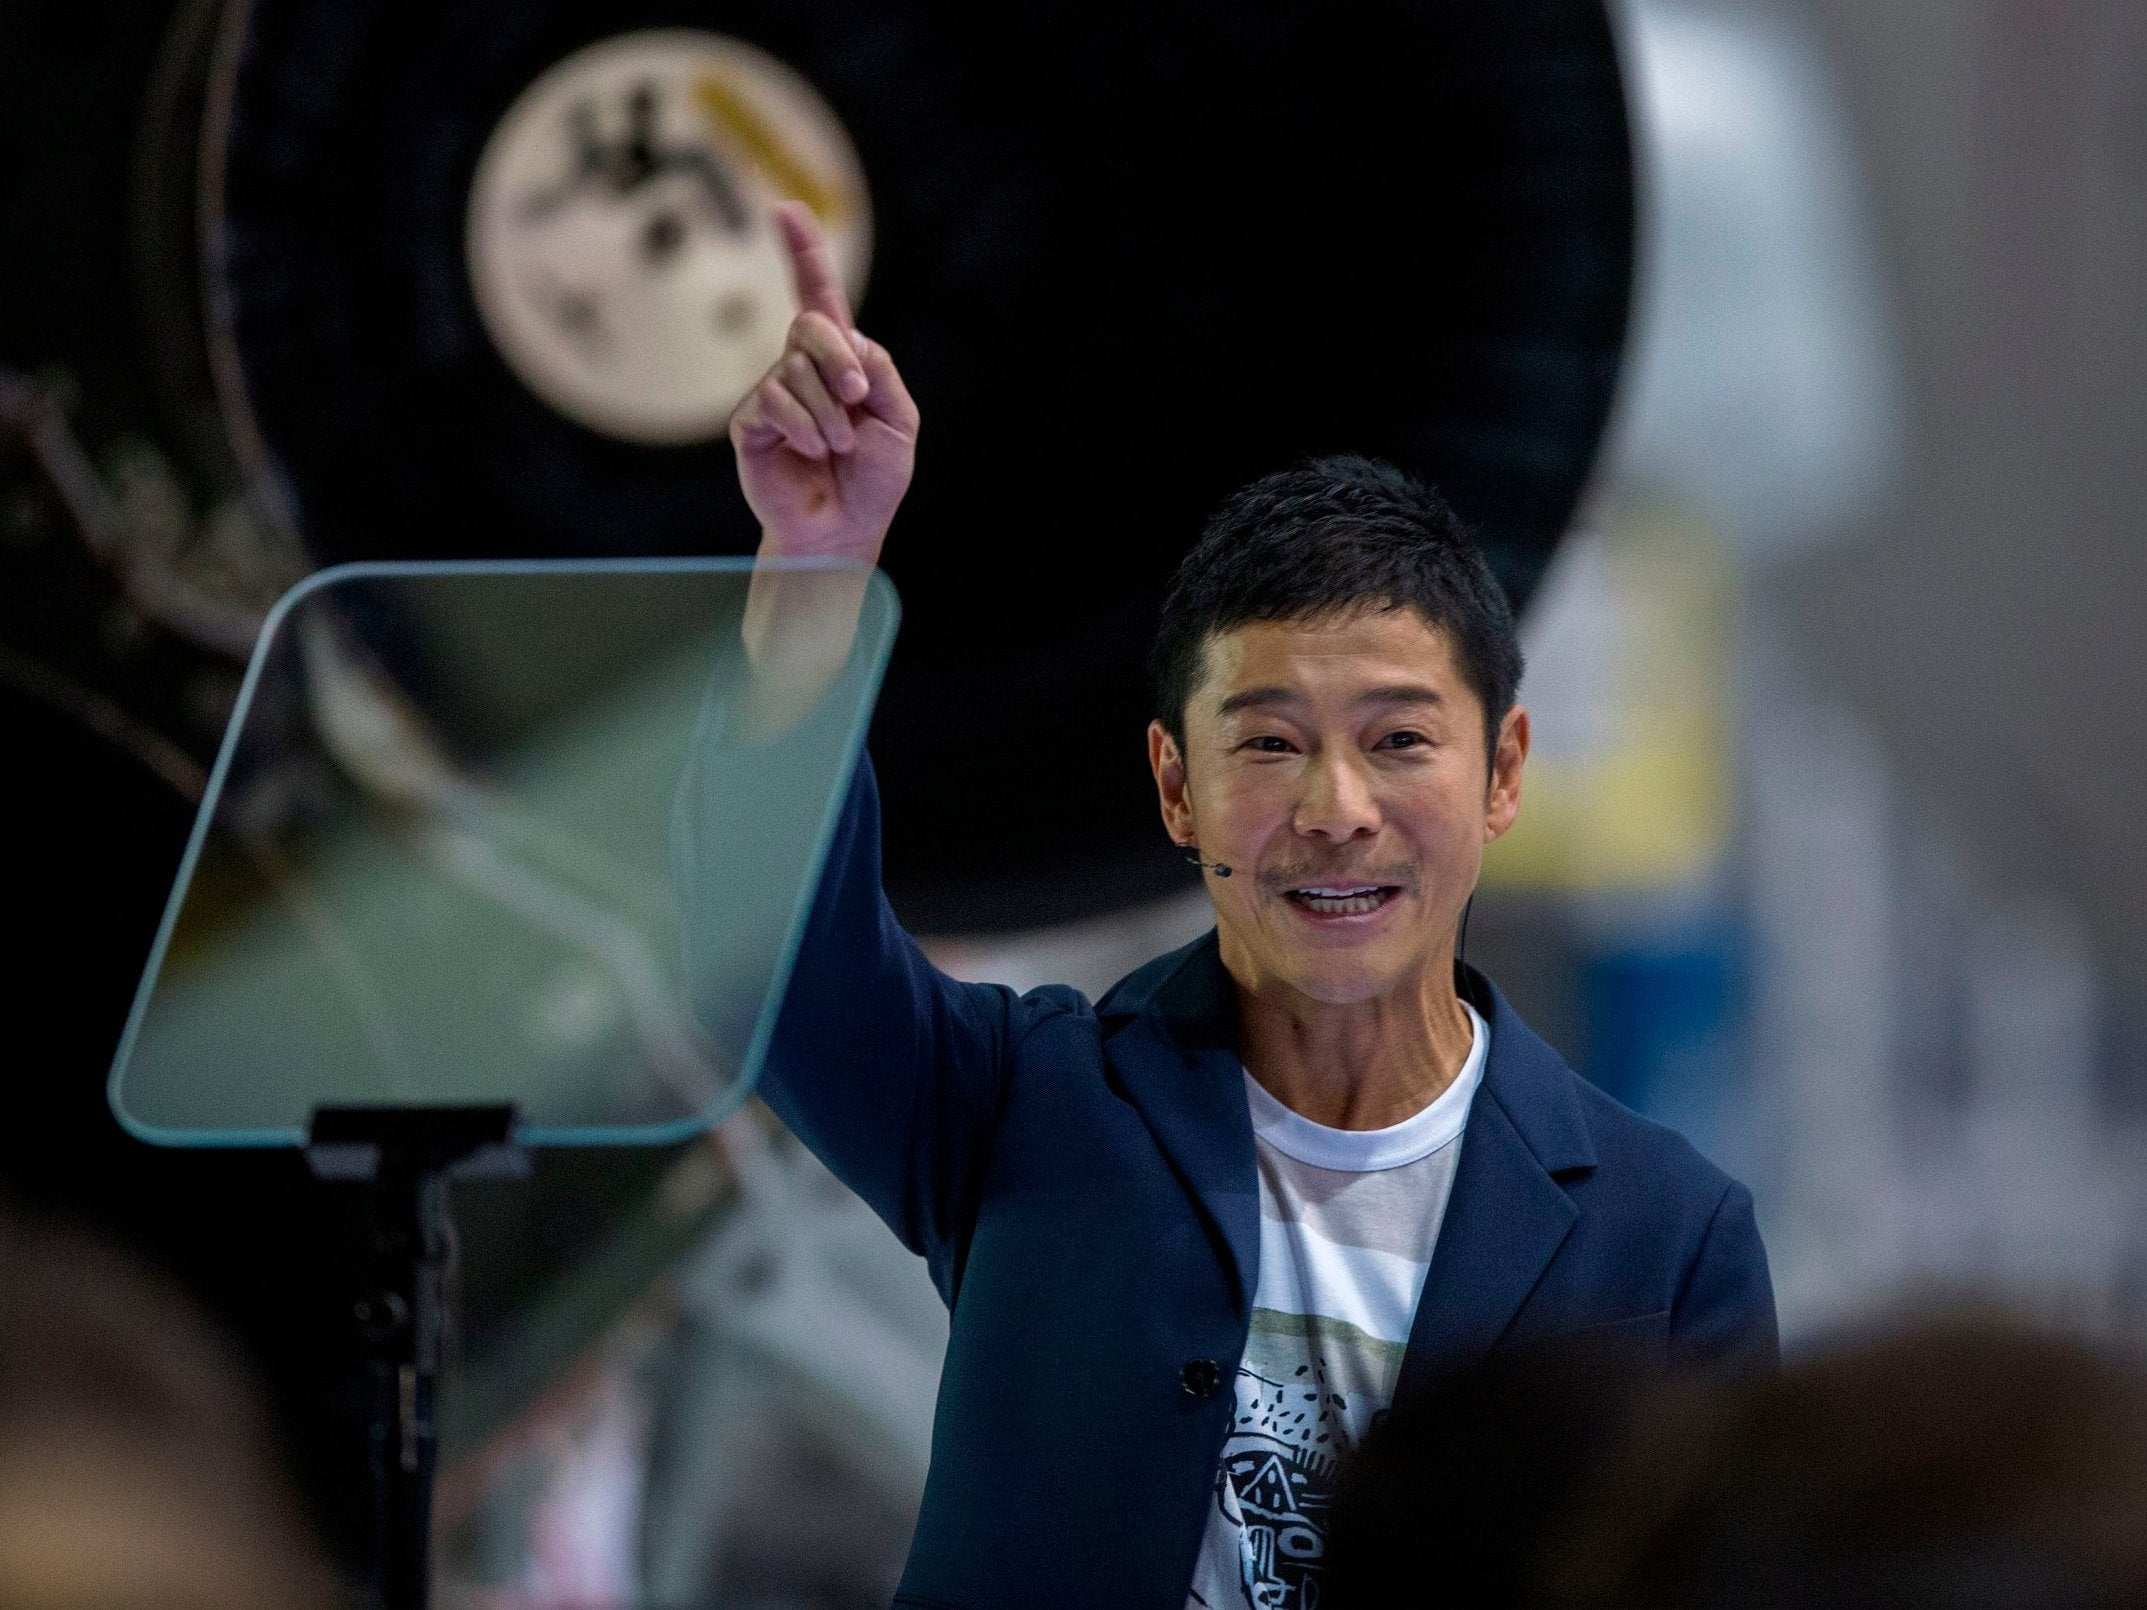 Japanese billionaire Yusaku Maezawa at his unveiling in Hawthorne, California, as the first private passenger to fly around the moon aboard the SpaceX Big Falcon Rocket ( David McNew/AFP/Getty )